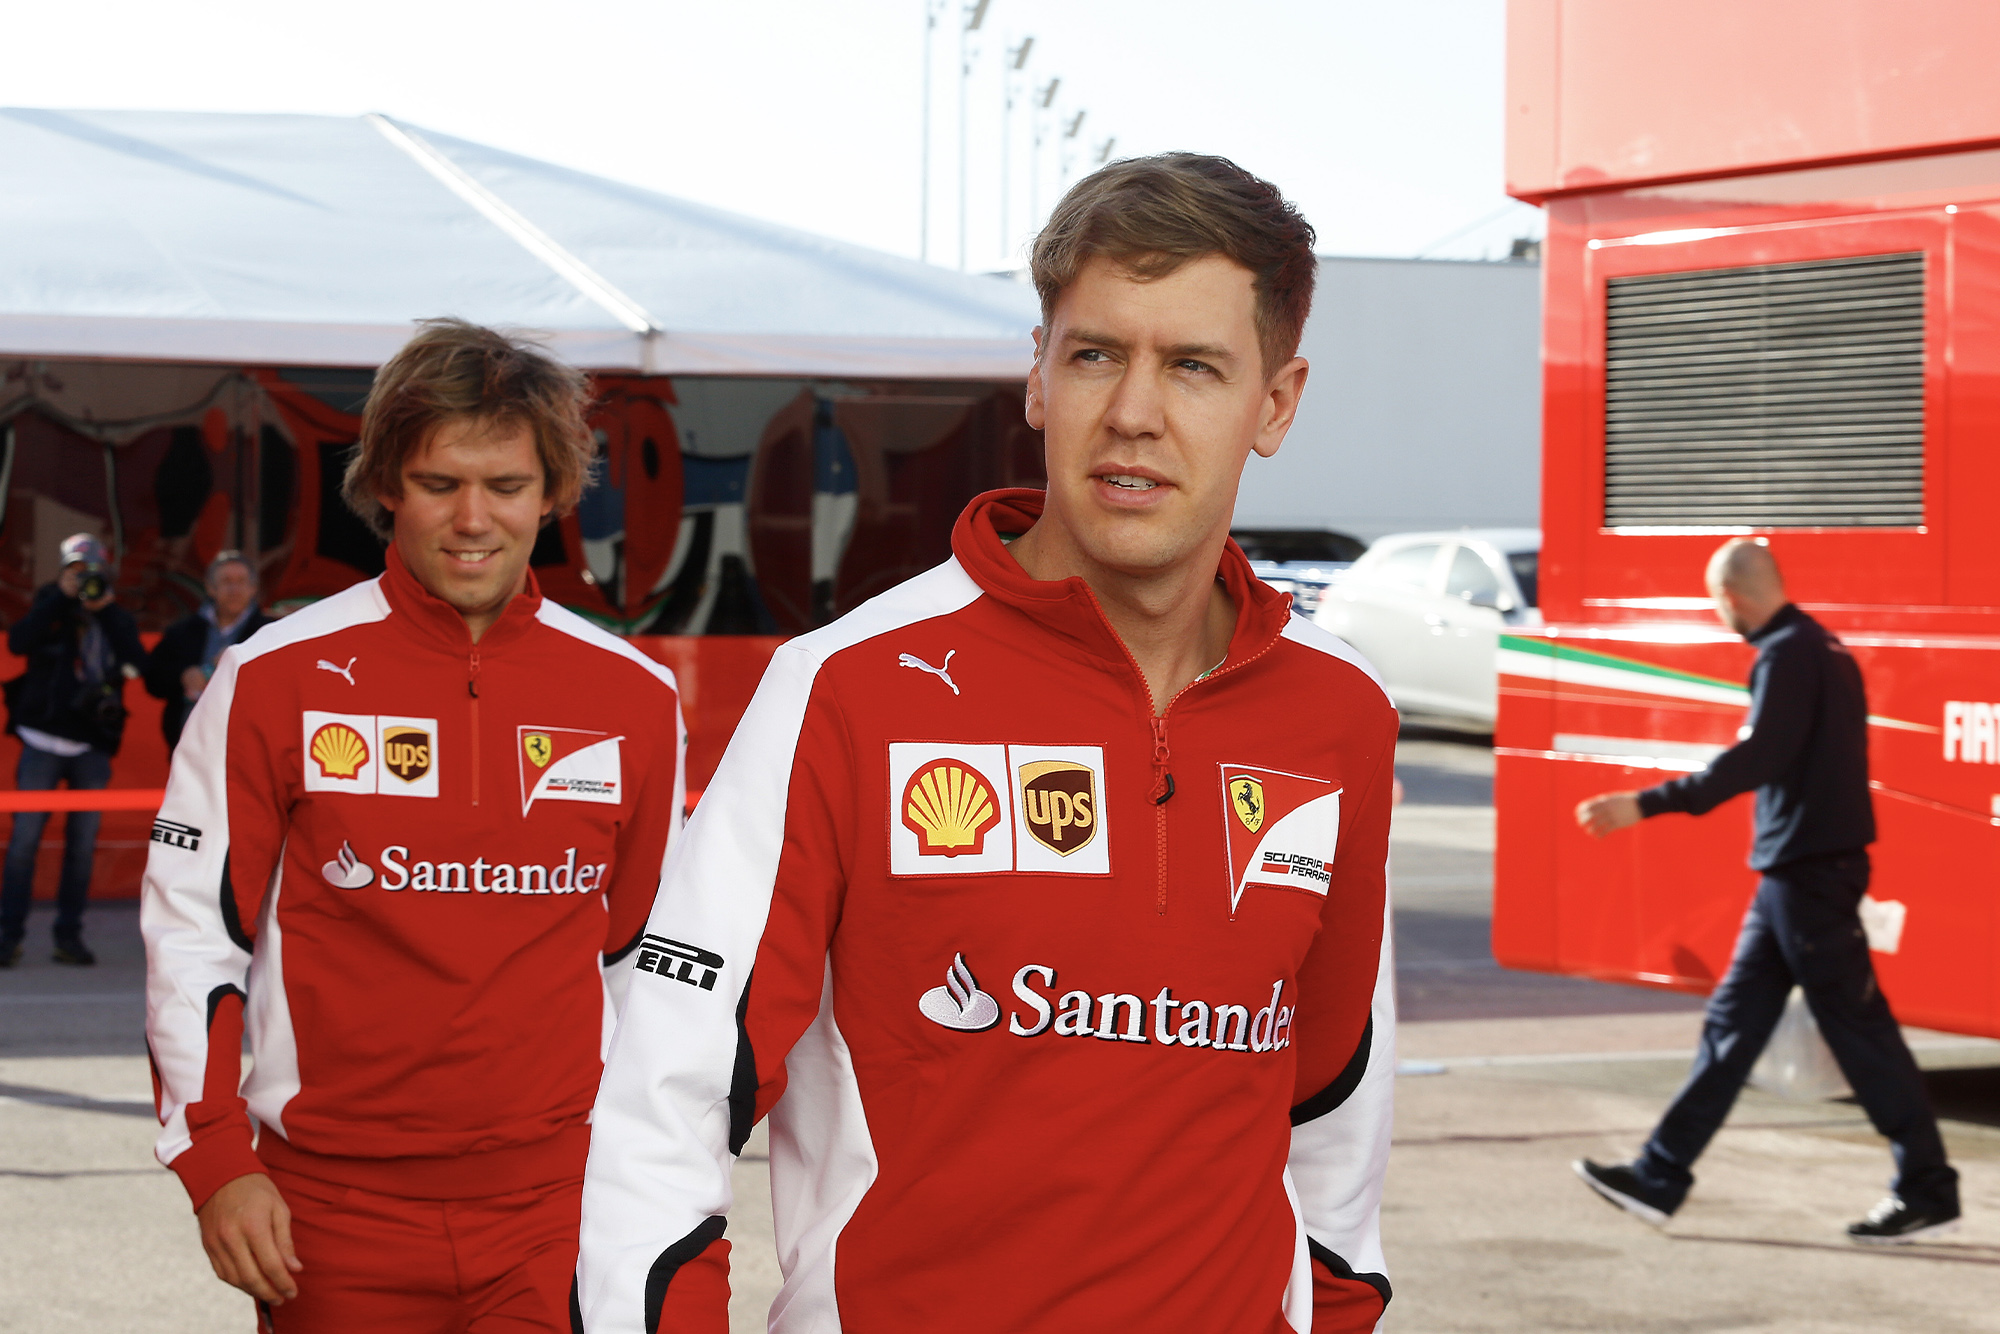 Sebastian Vettel during his first pre-season test with Ferrari in 2015